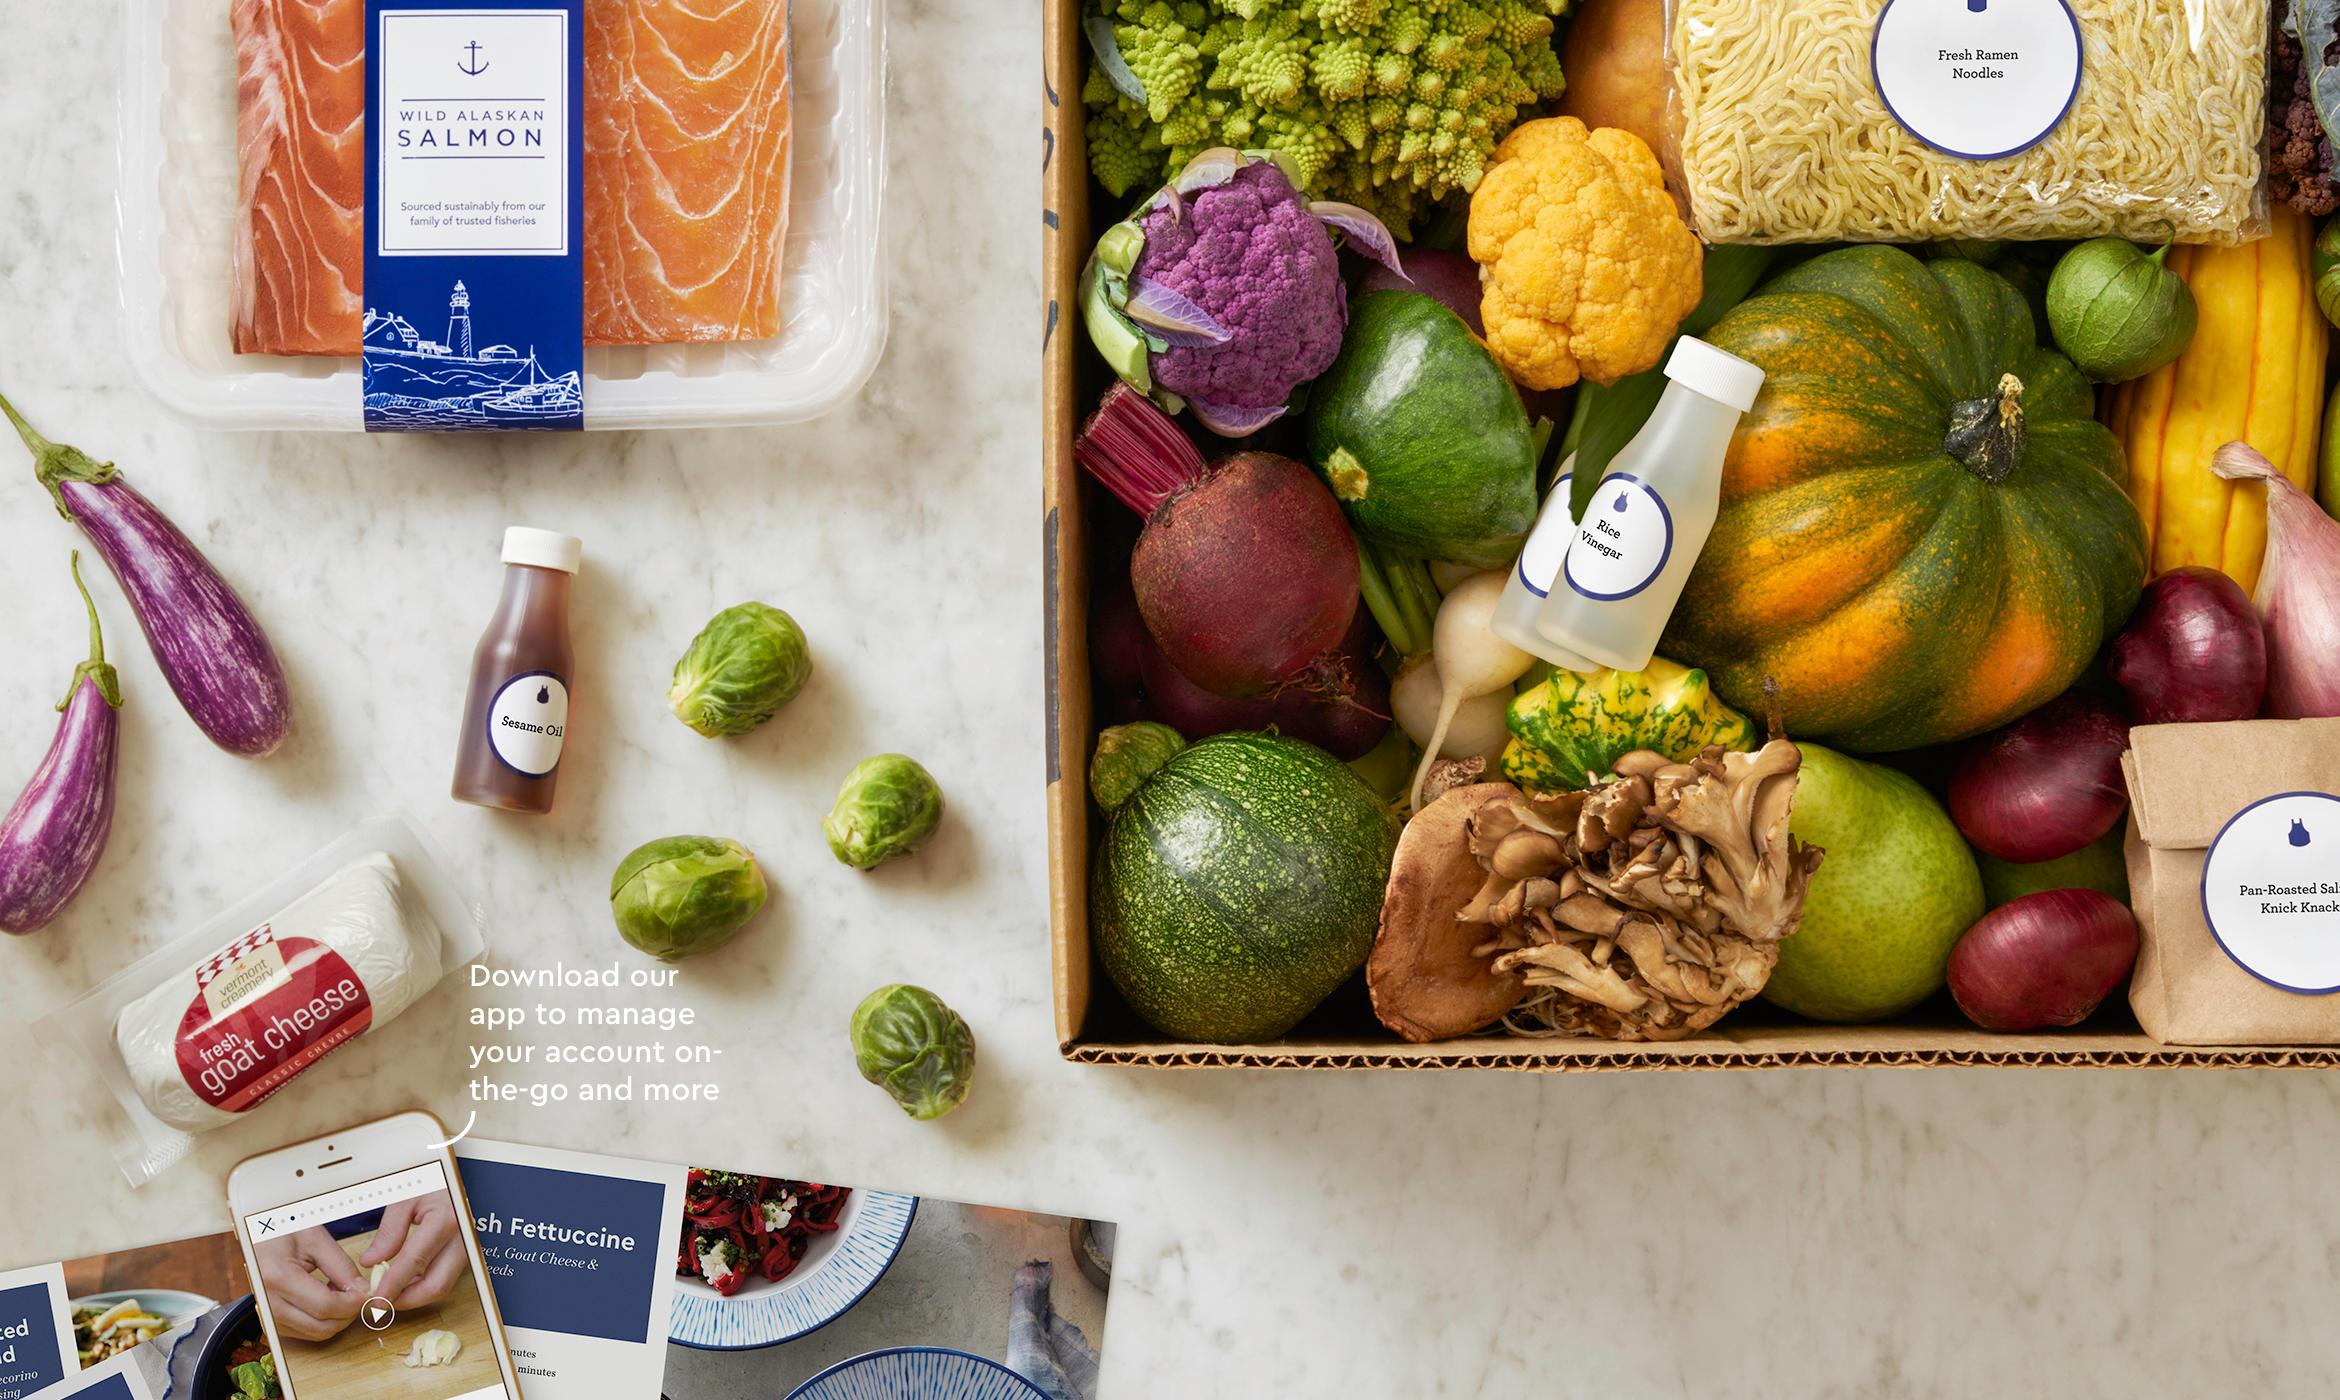 blue apron food